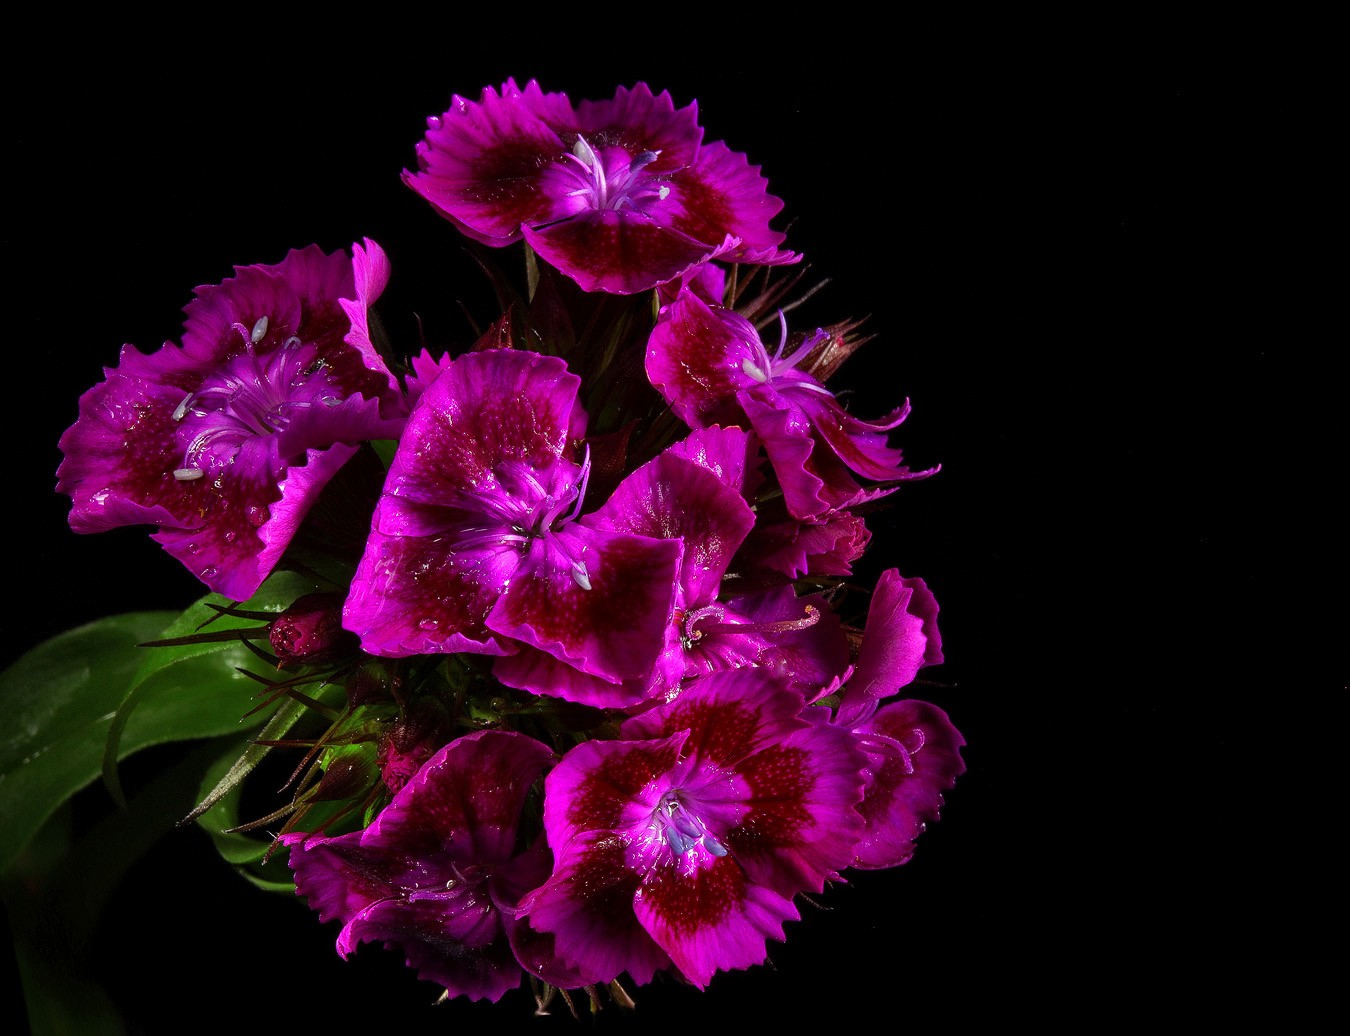 sweet william wet purple img abcw author sava gre gregory and verena